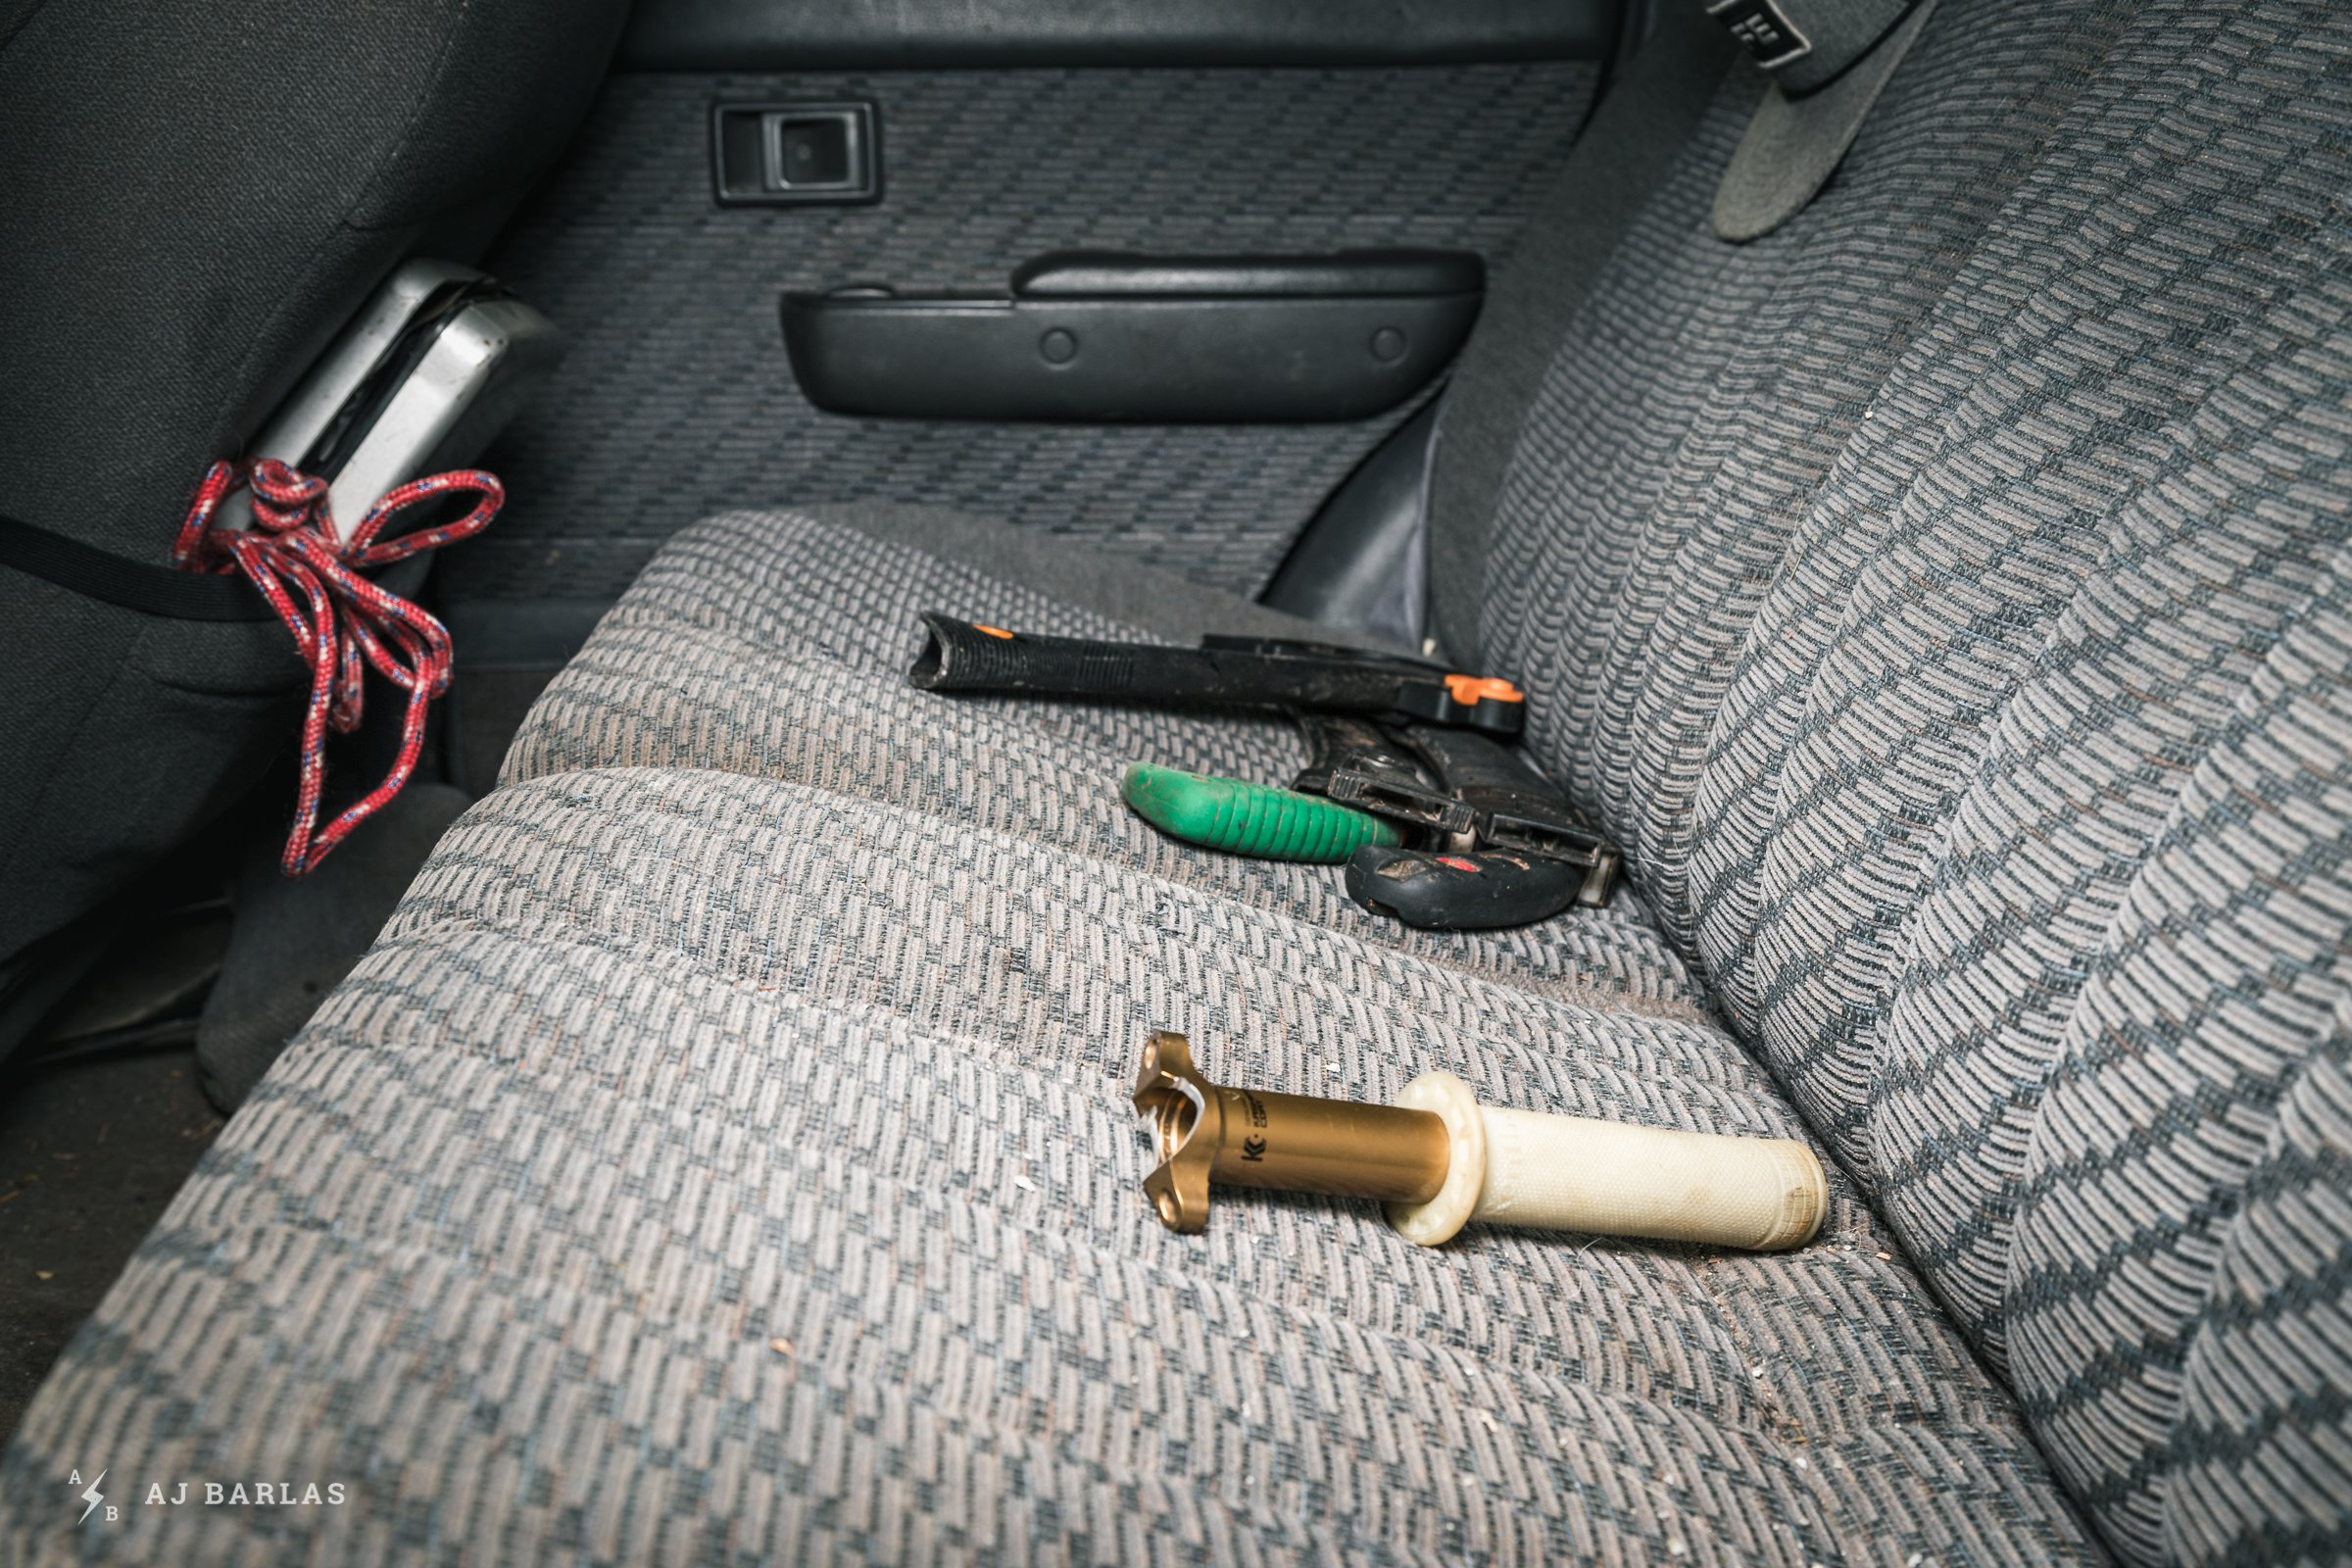 Owen Foster's Toyota 4Runner with tools in the back seat